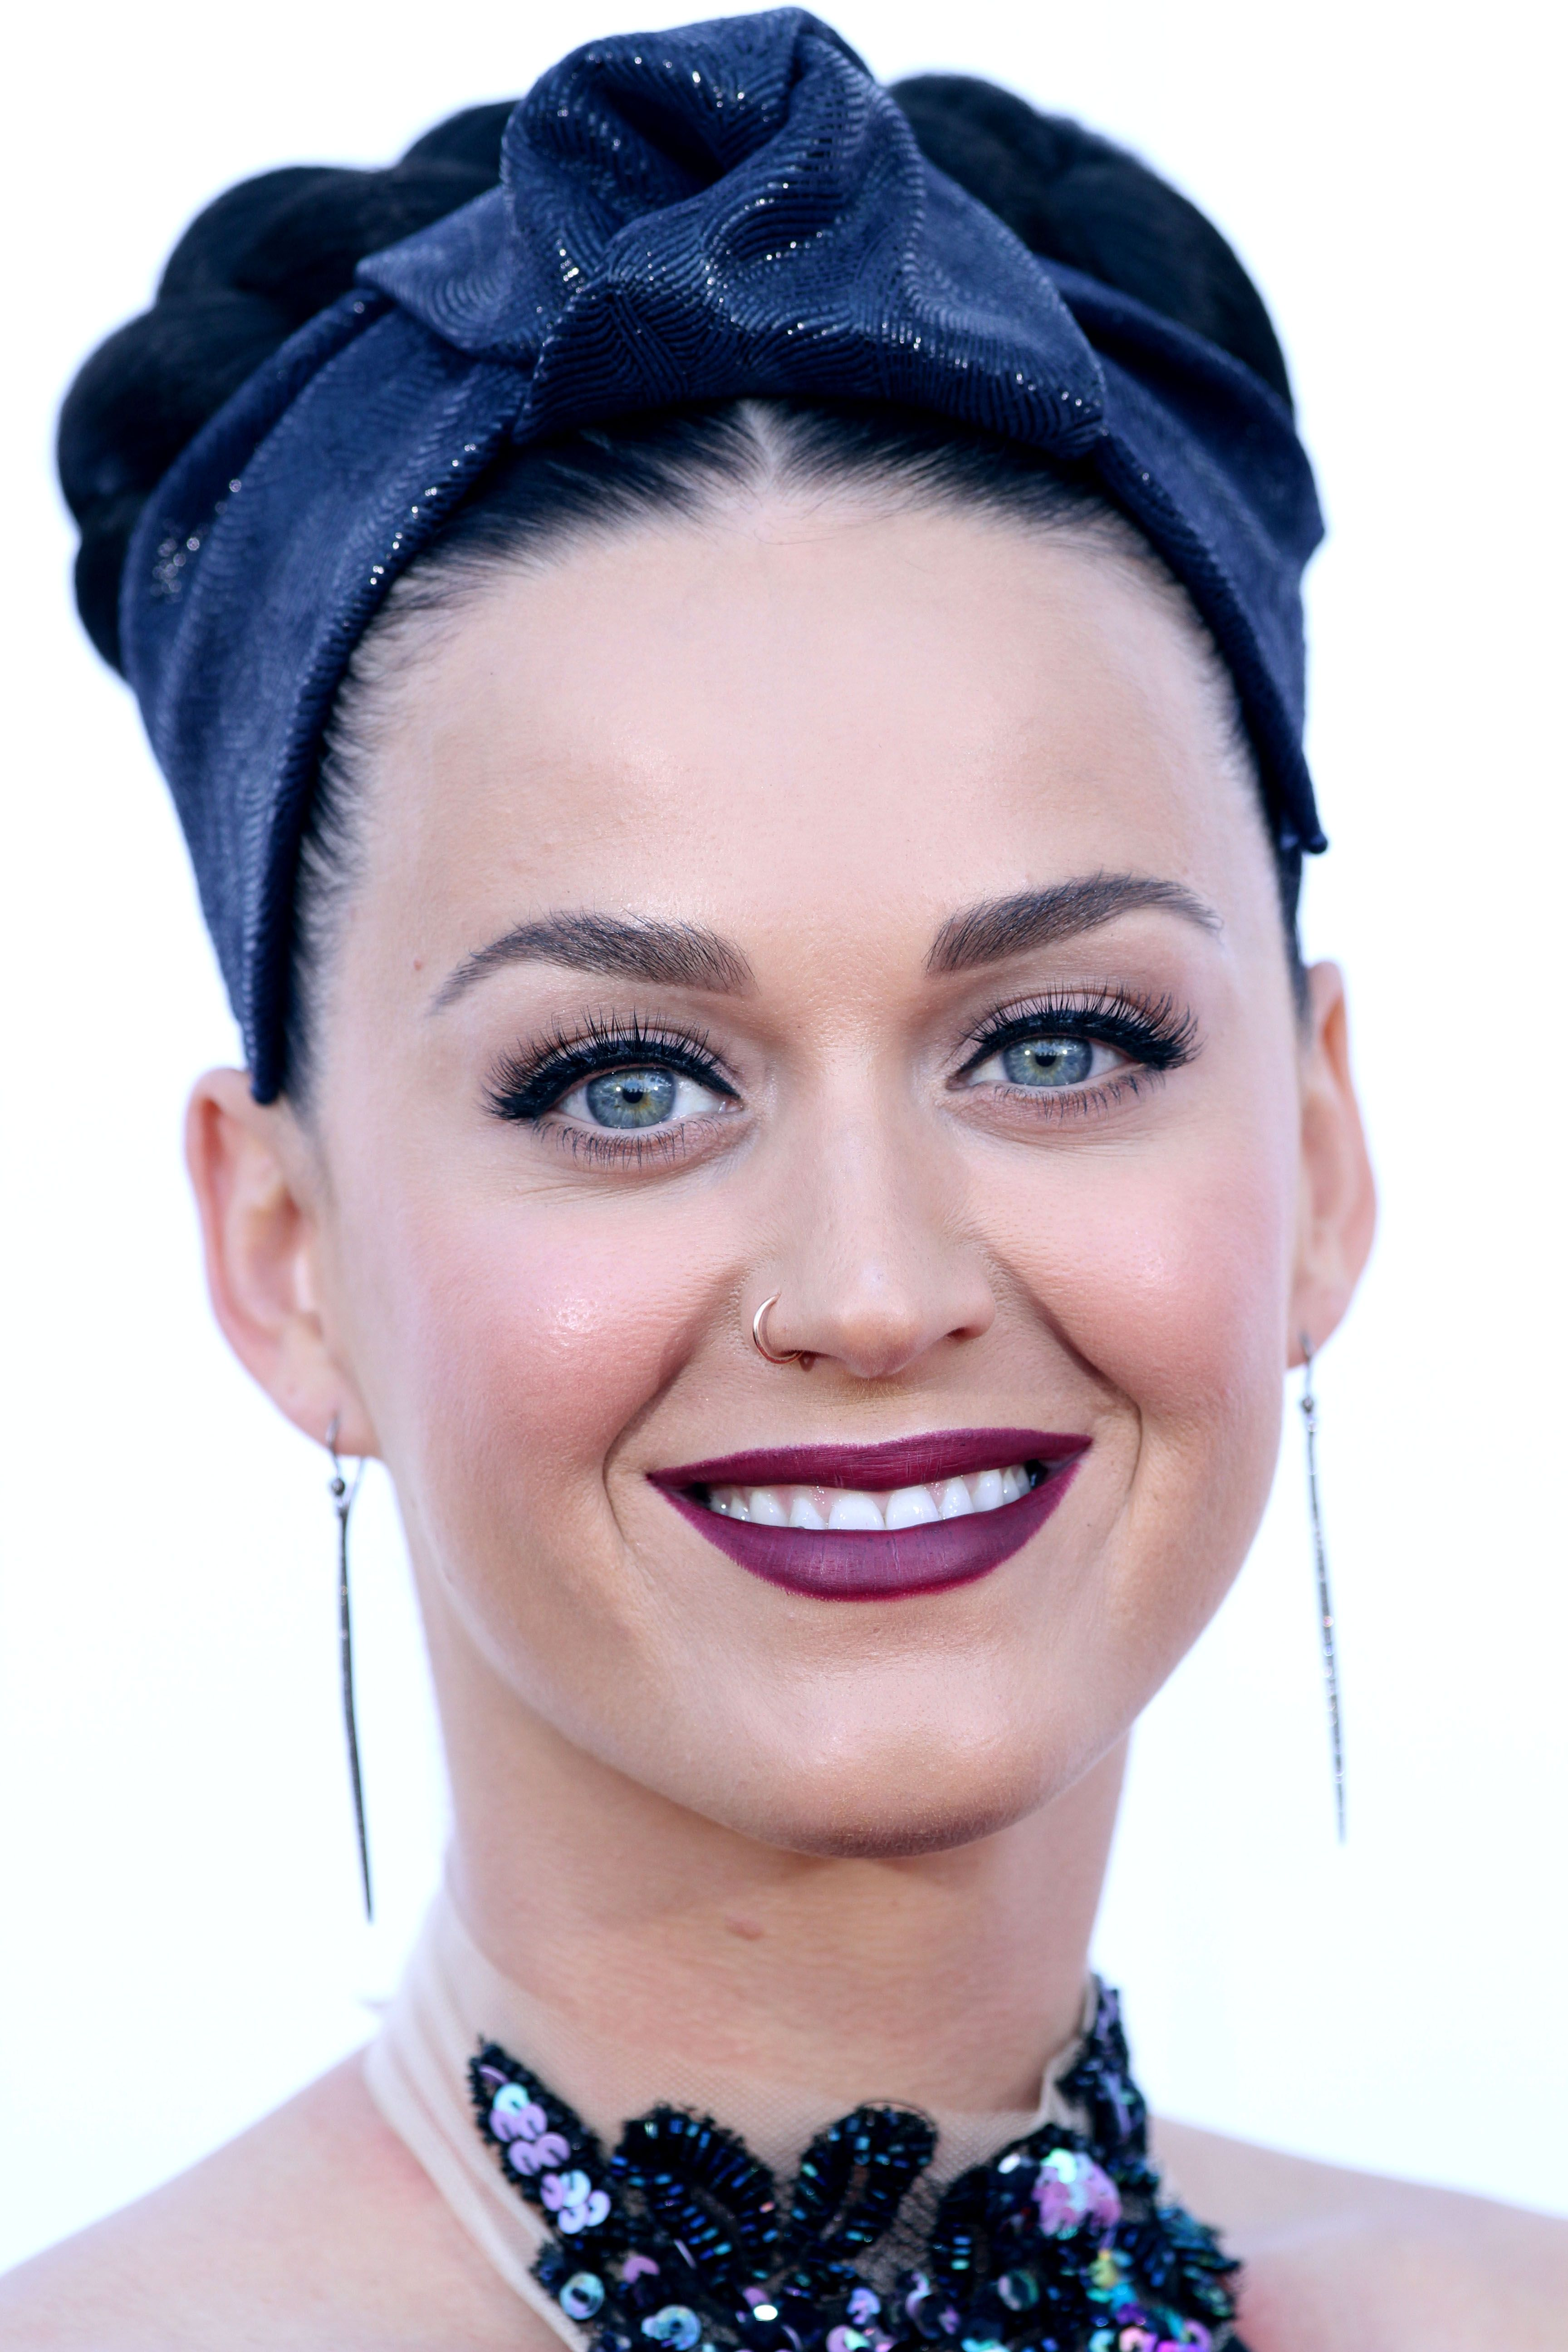 Katy Perry Music videos and more updates PRISM Out NOW